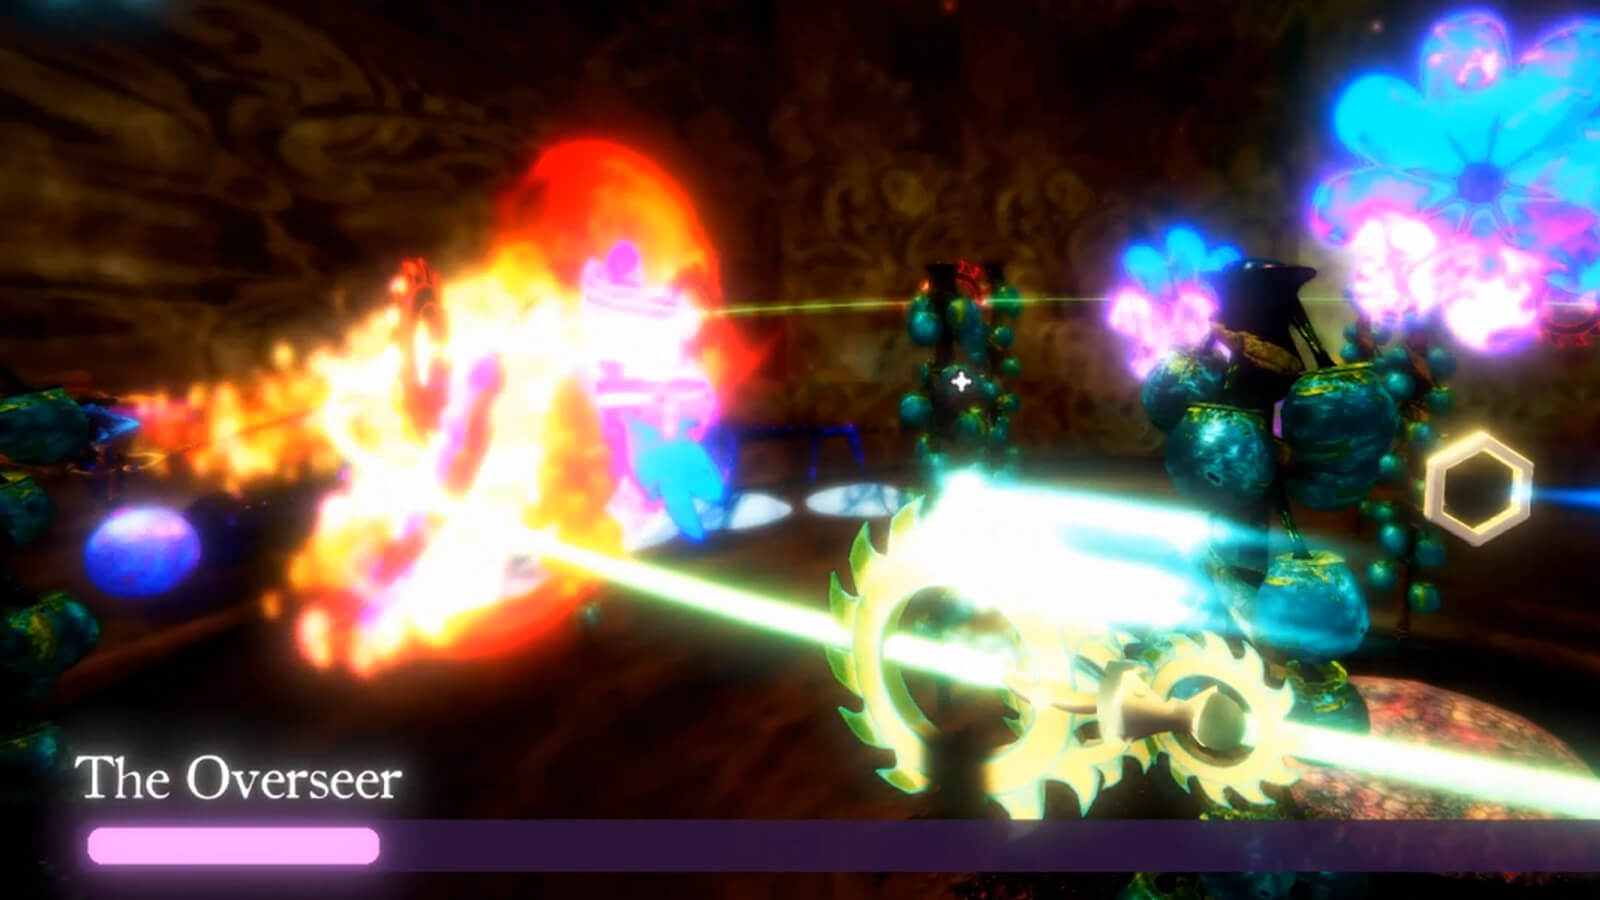 Two beams shoot towards a fiery explosion as Aftermoor protagonist Diti battles the game's final boss, The Oversser.